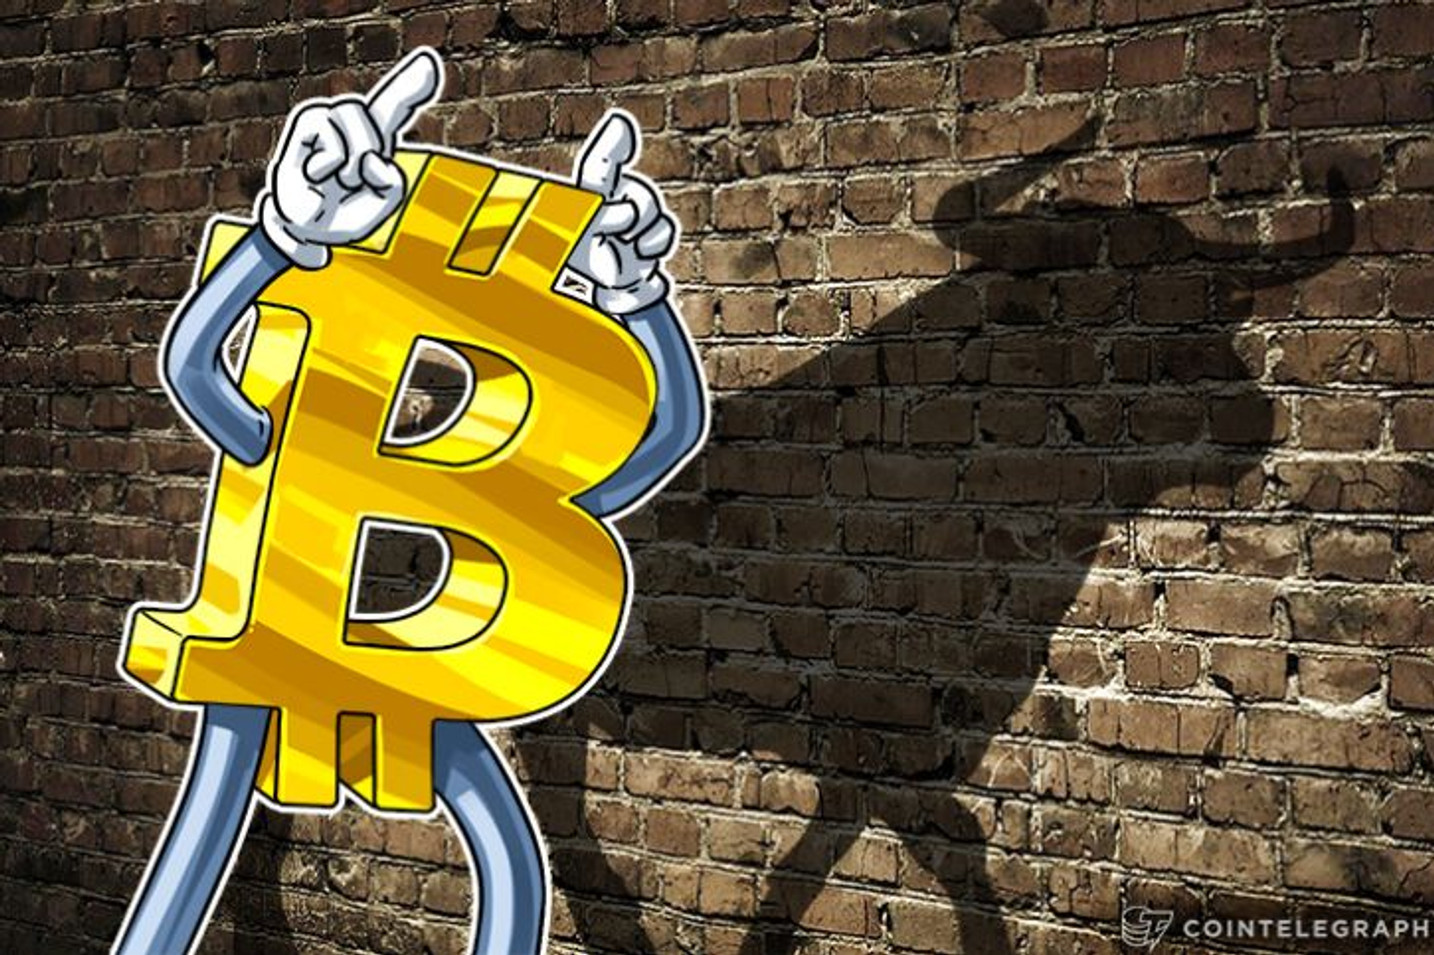 picture of a bitcoin with two fingers on its head, casting the shadow of a bull on the wall